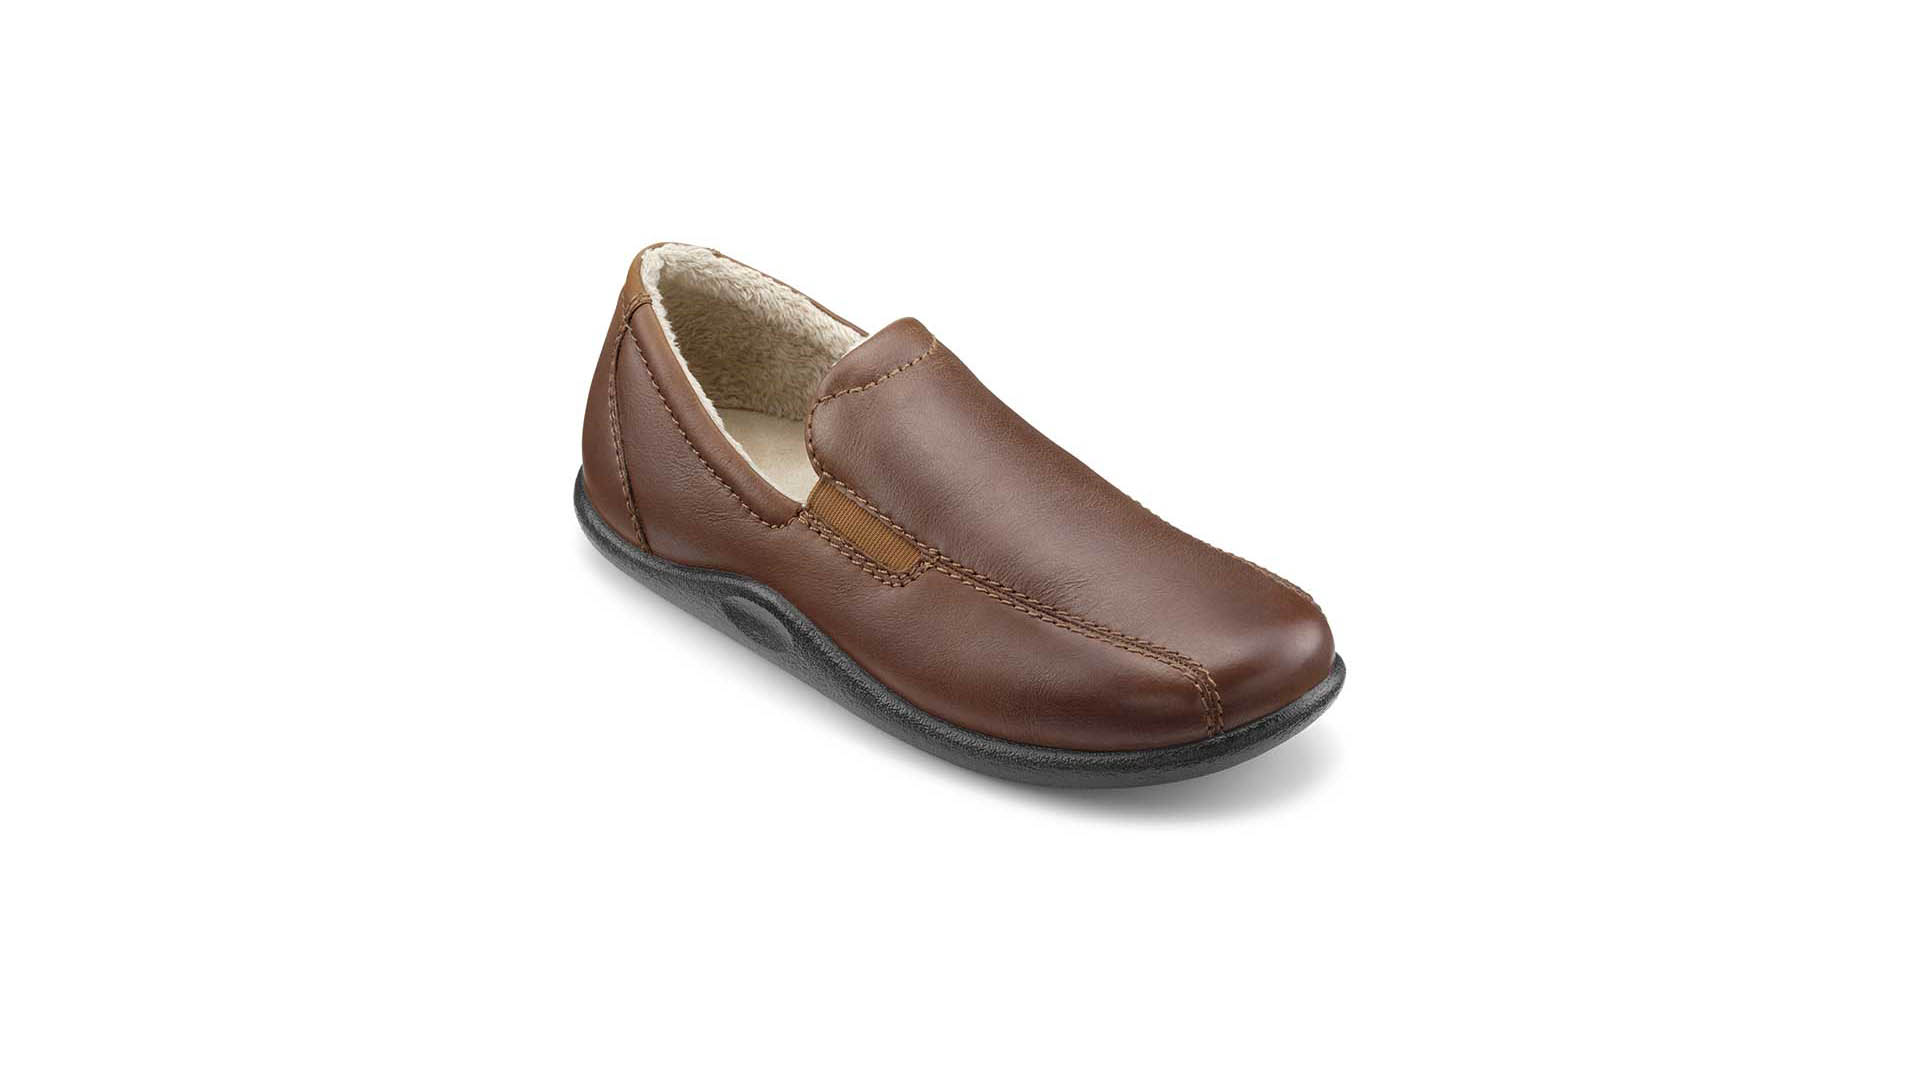 Relax Shoes From Hotter Shoes is a great option for your new shoes